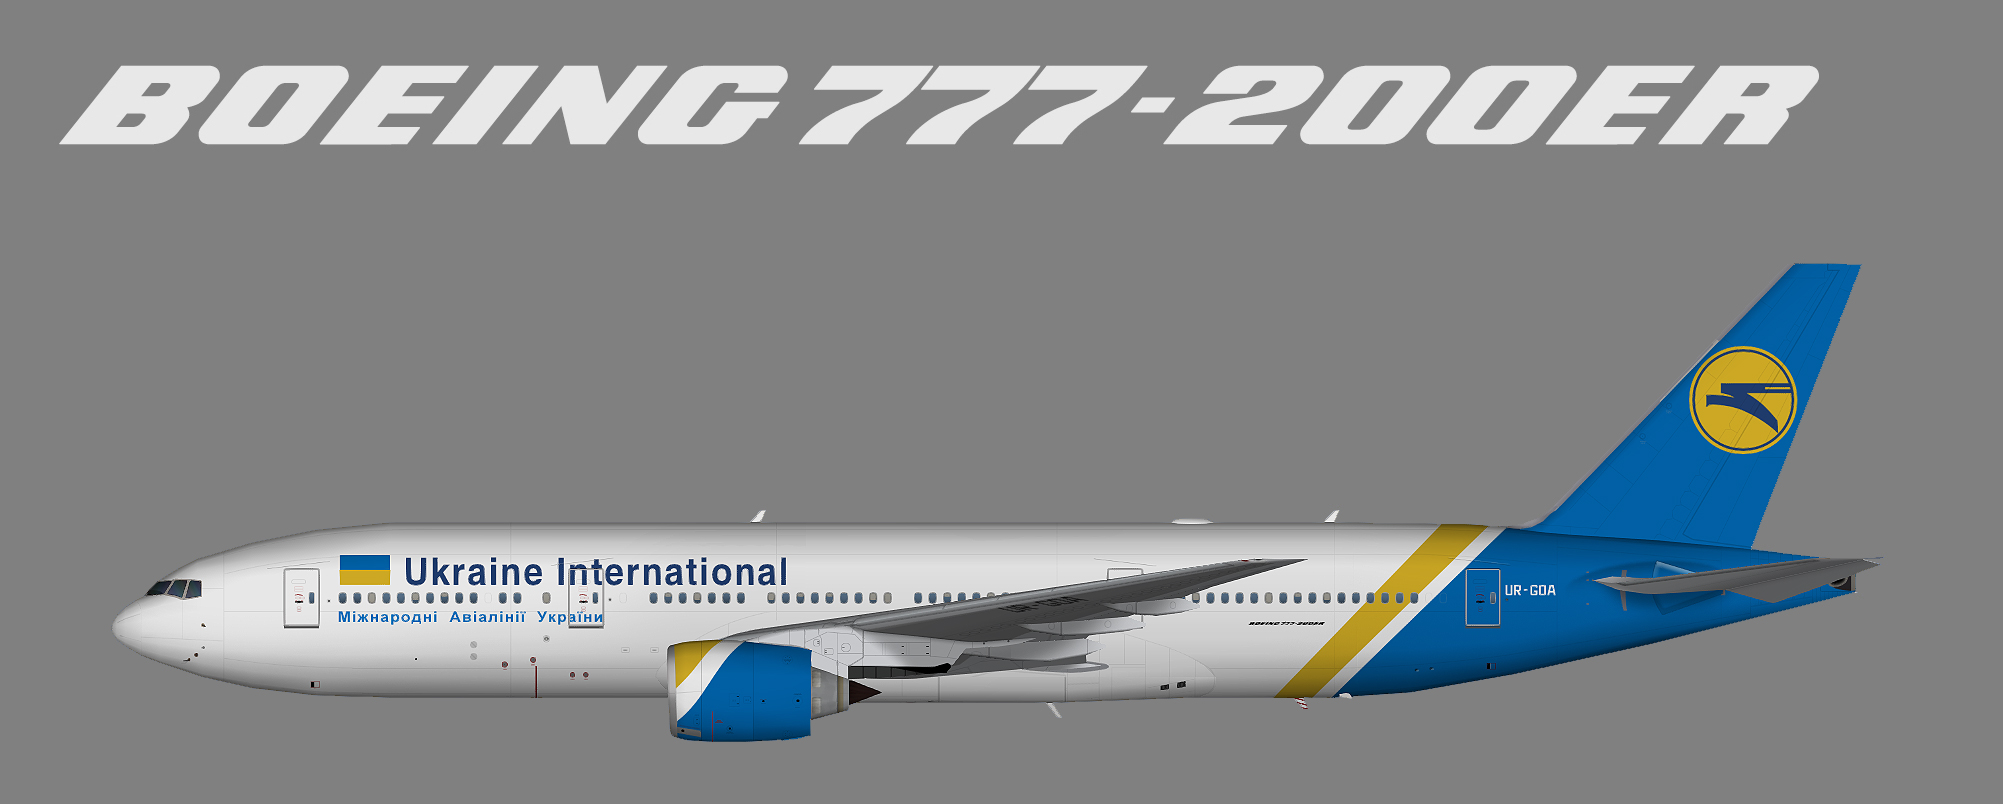 Ukraine International Airlines Boeing 777-200